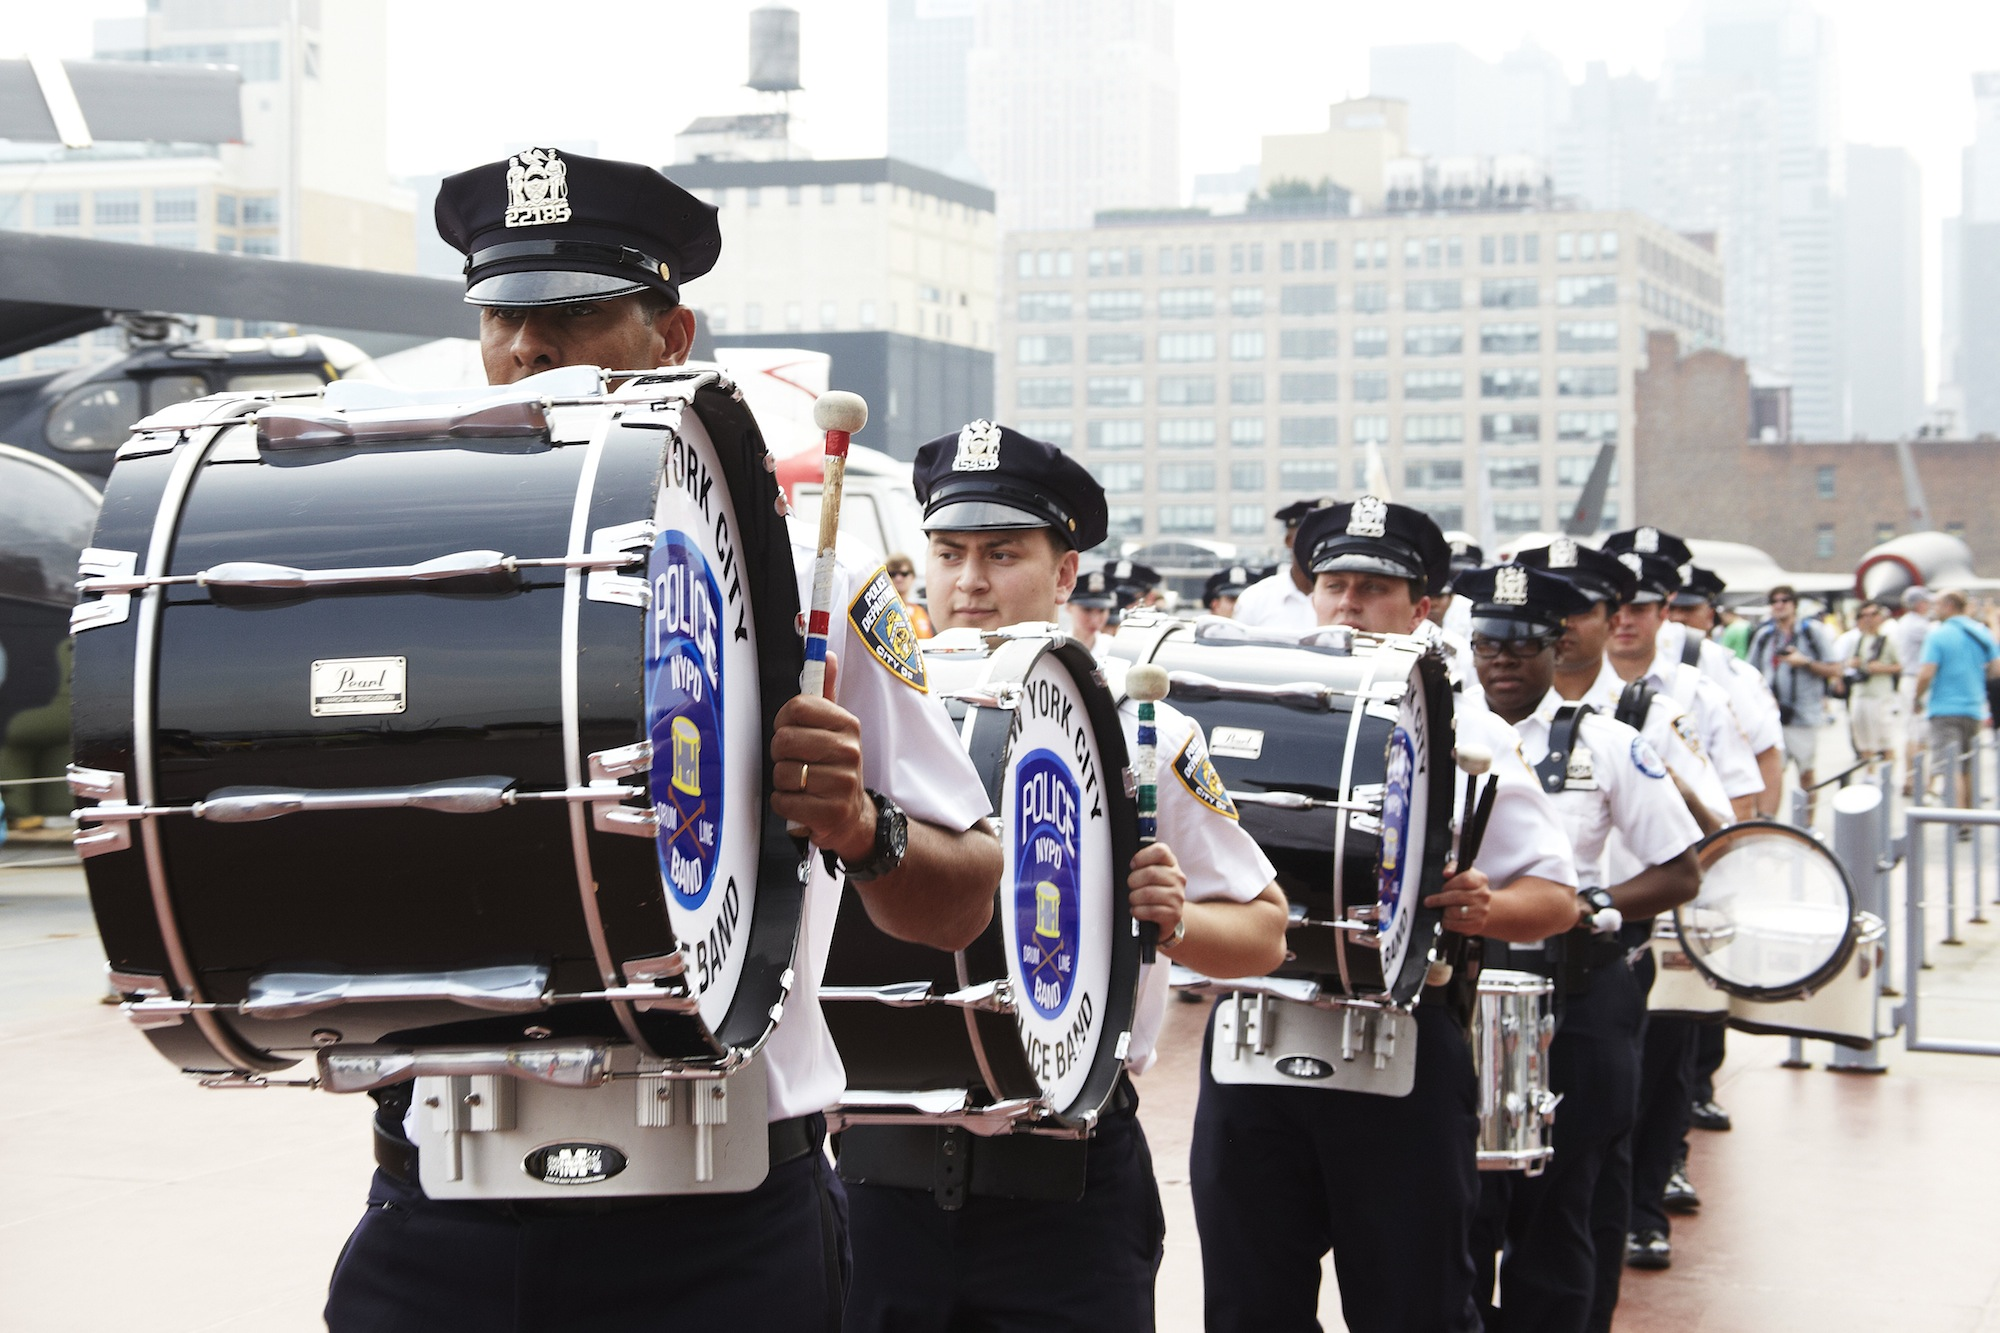 NY Police Department Marching Band Performs at Enterprise Reopening